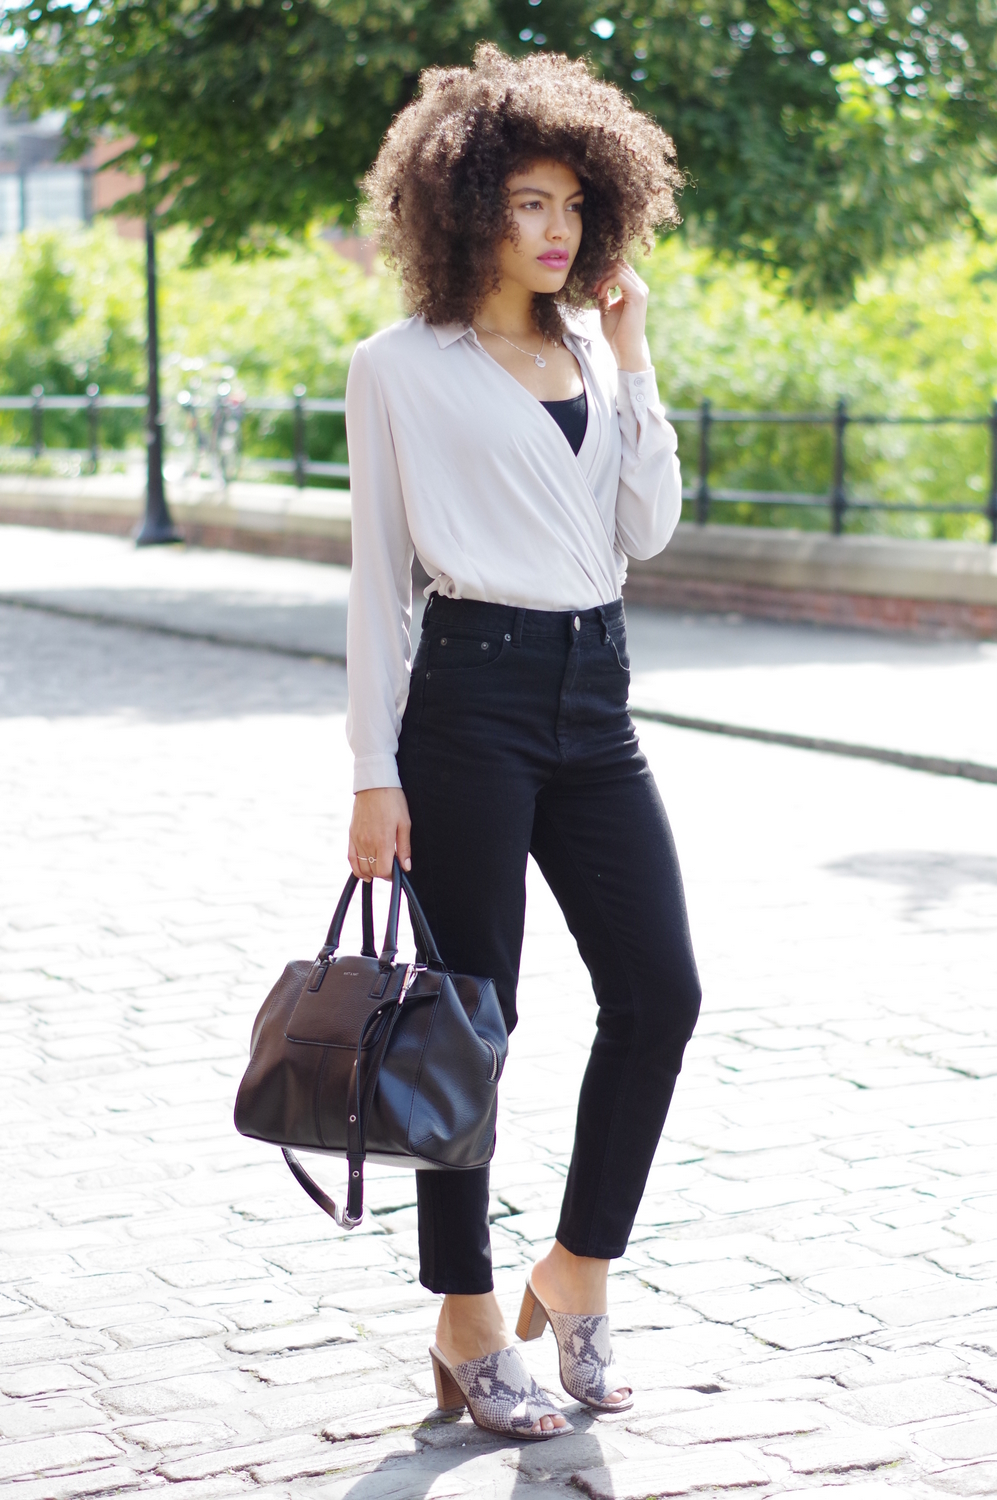 Black Slim fit mom jeans outfit